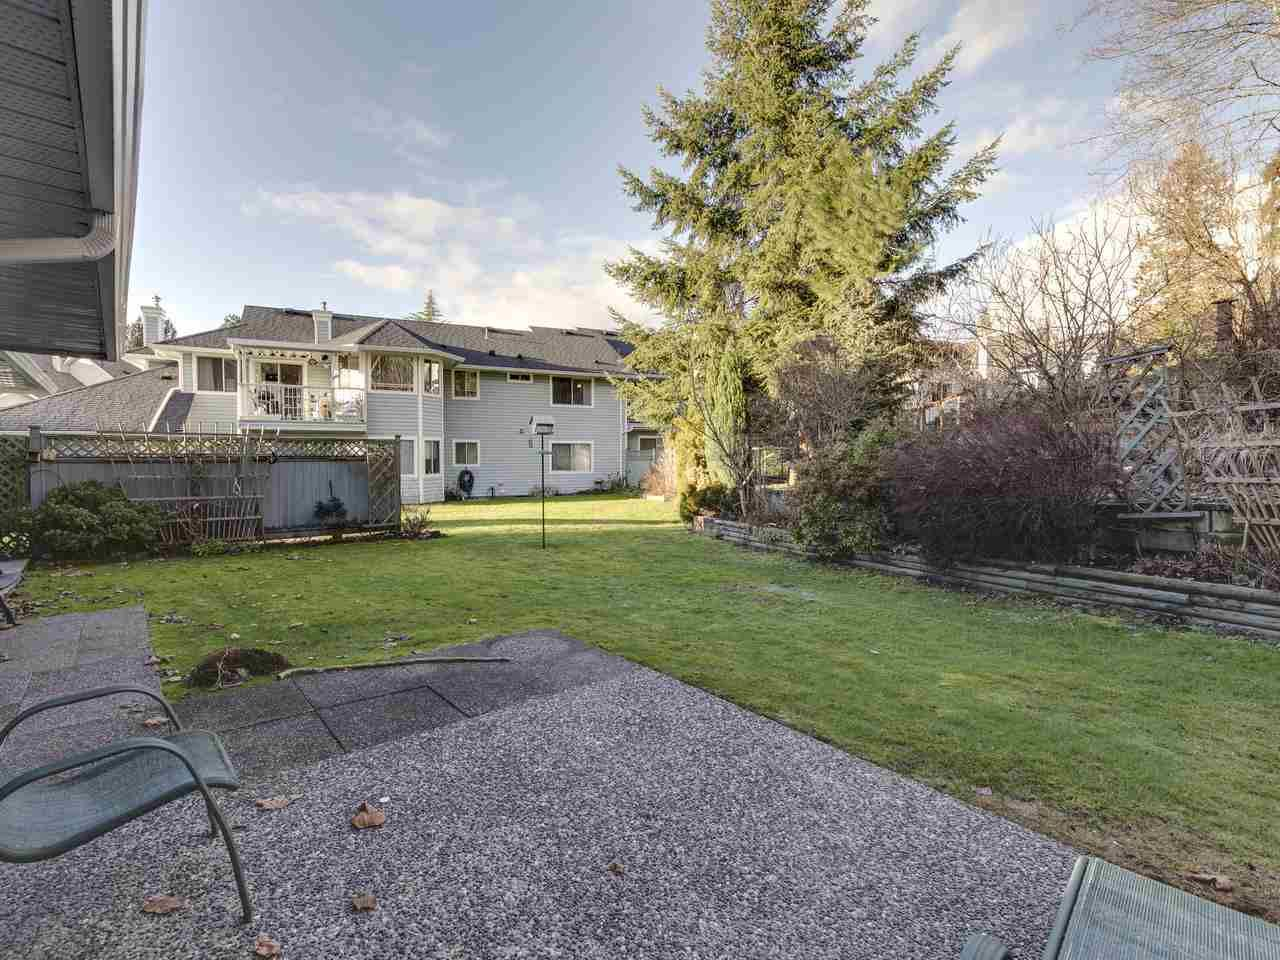 """Photo 7: Photos: 127 22555 116 Avenue in Maple Ridge: East Central Townhouse for sale in """"HILLSIDE"""" : MLS®# R2493046"""